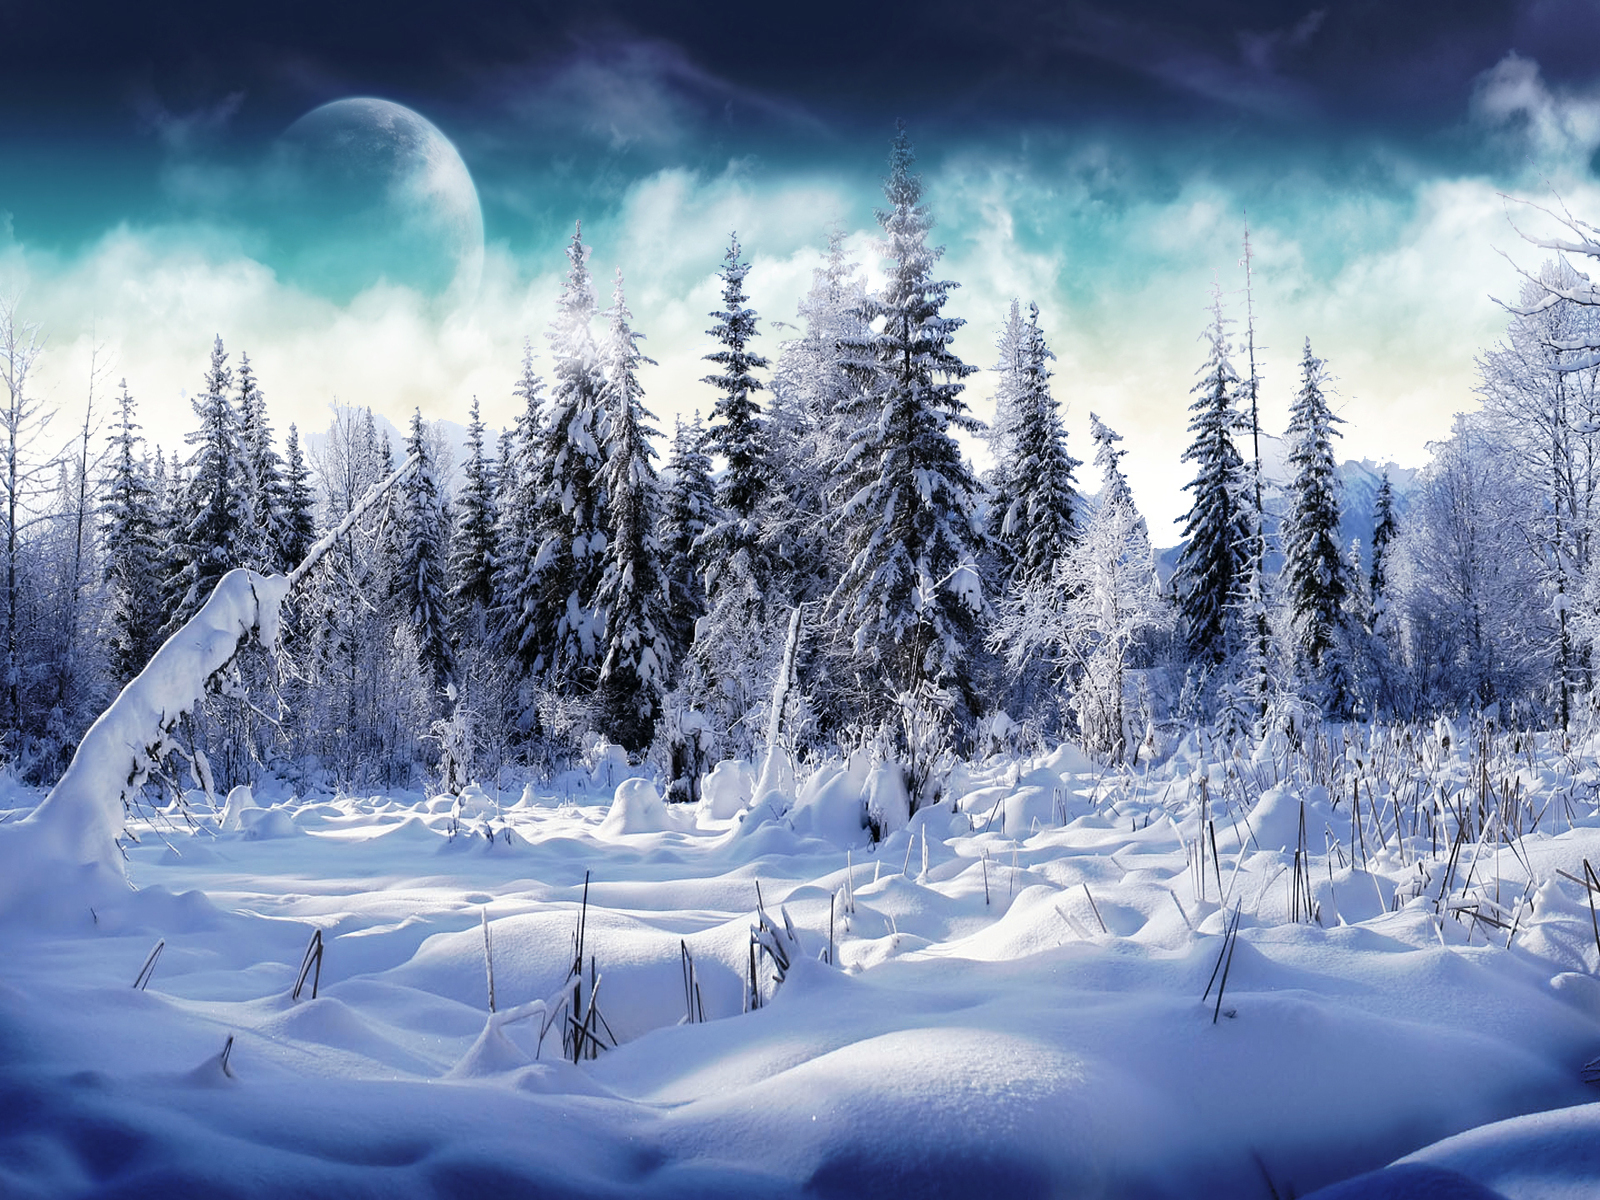 winter-wonderland-2-wallpapers_25521_1600x1200.jpg